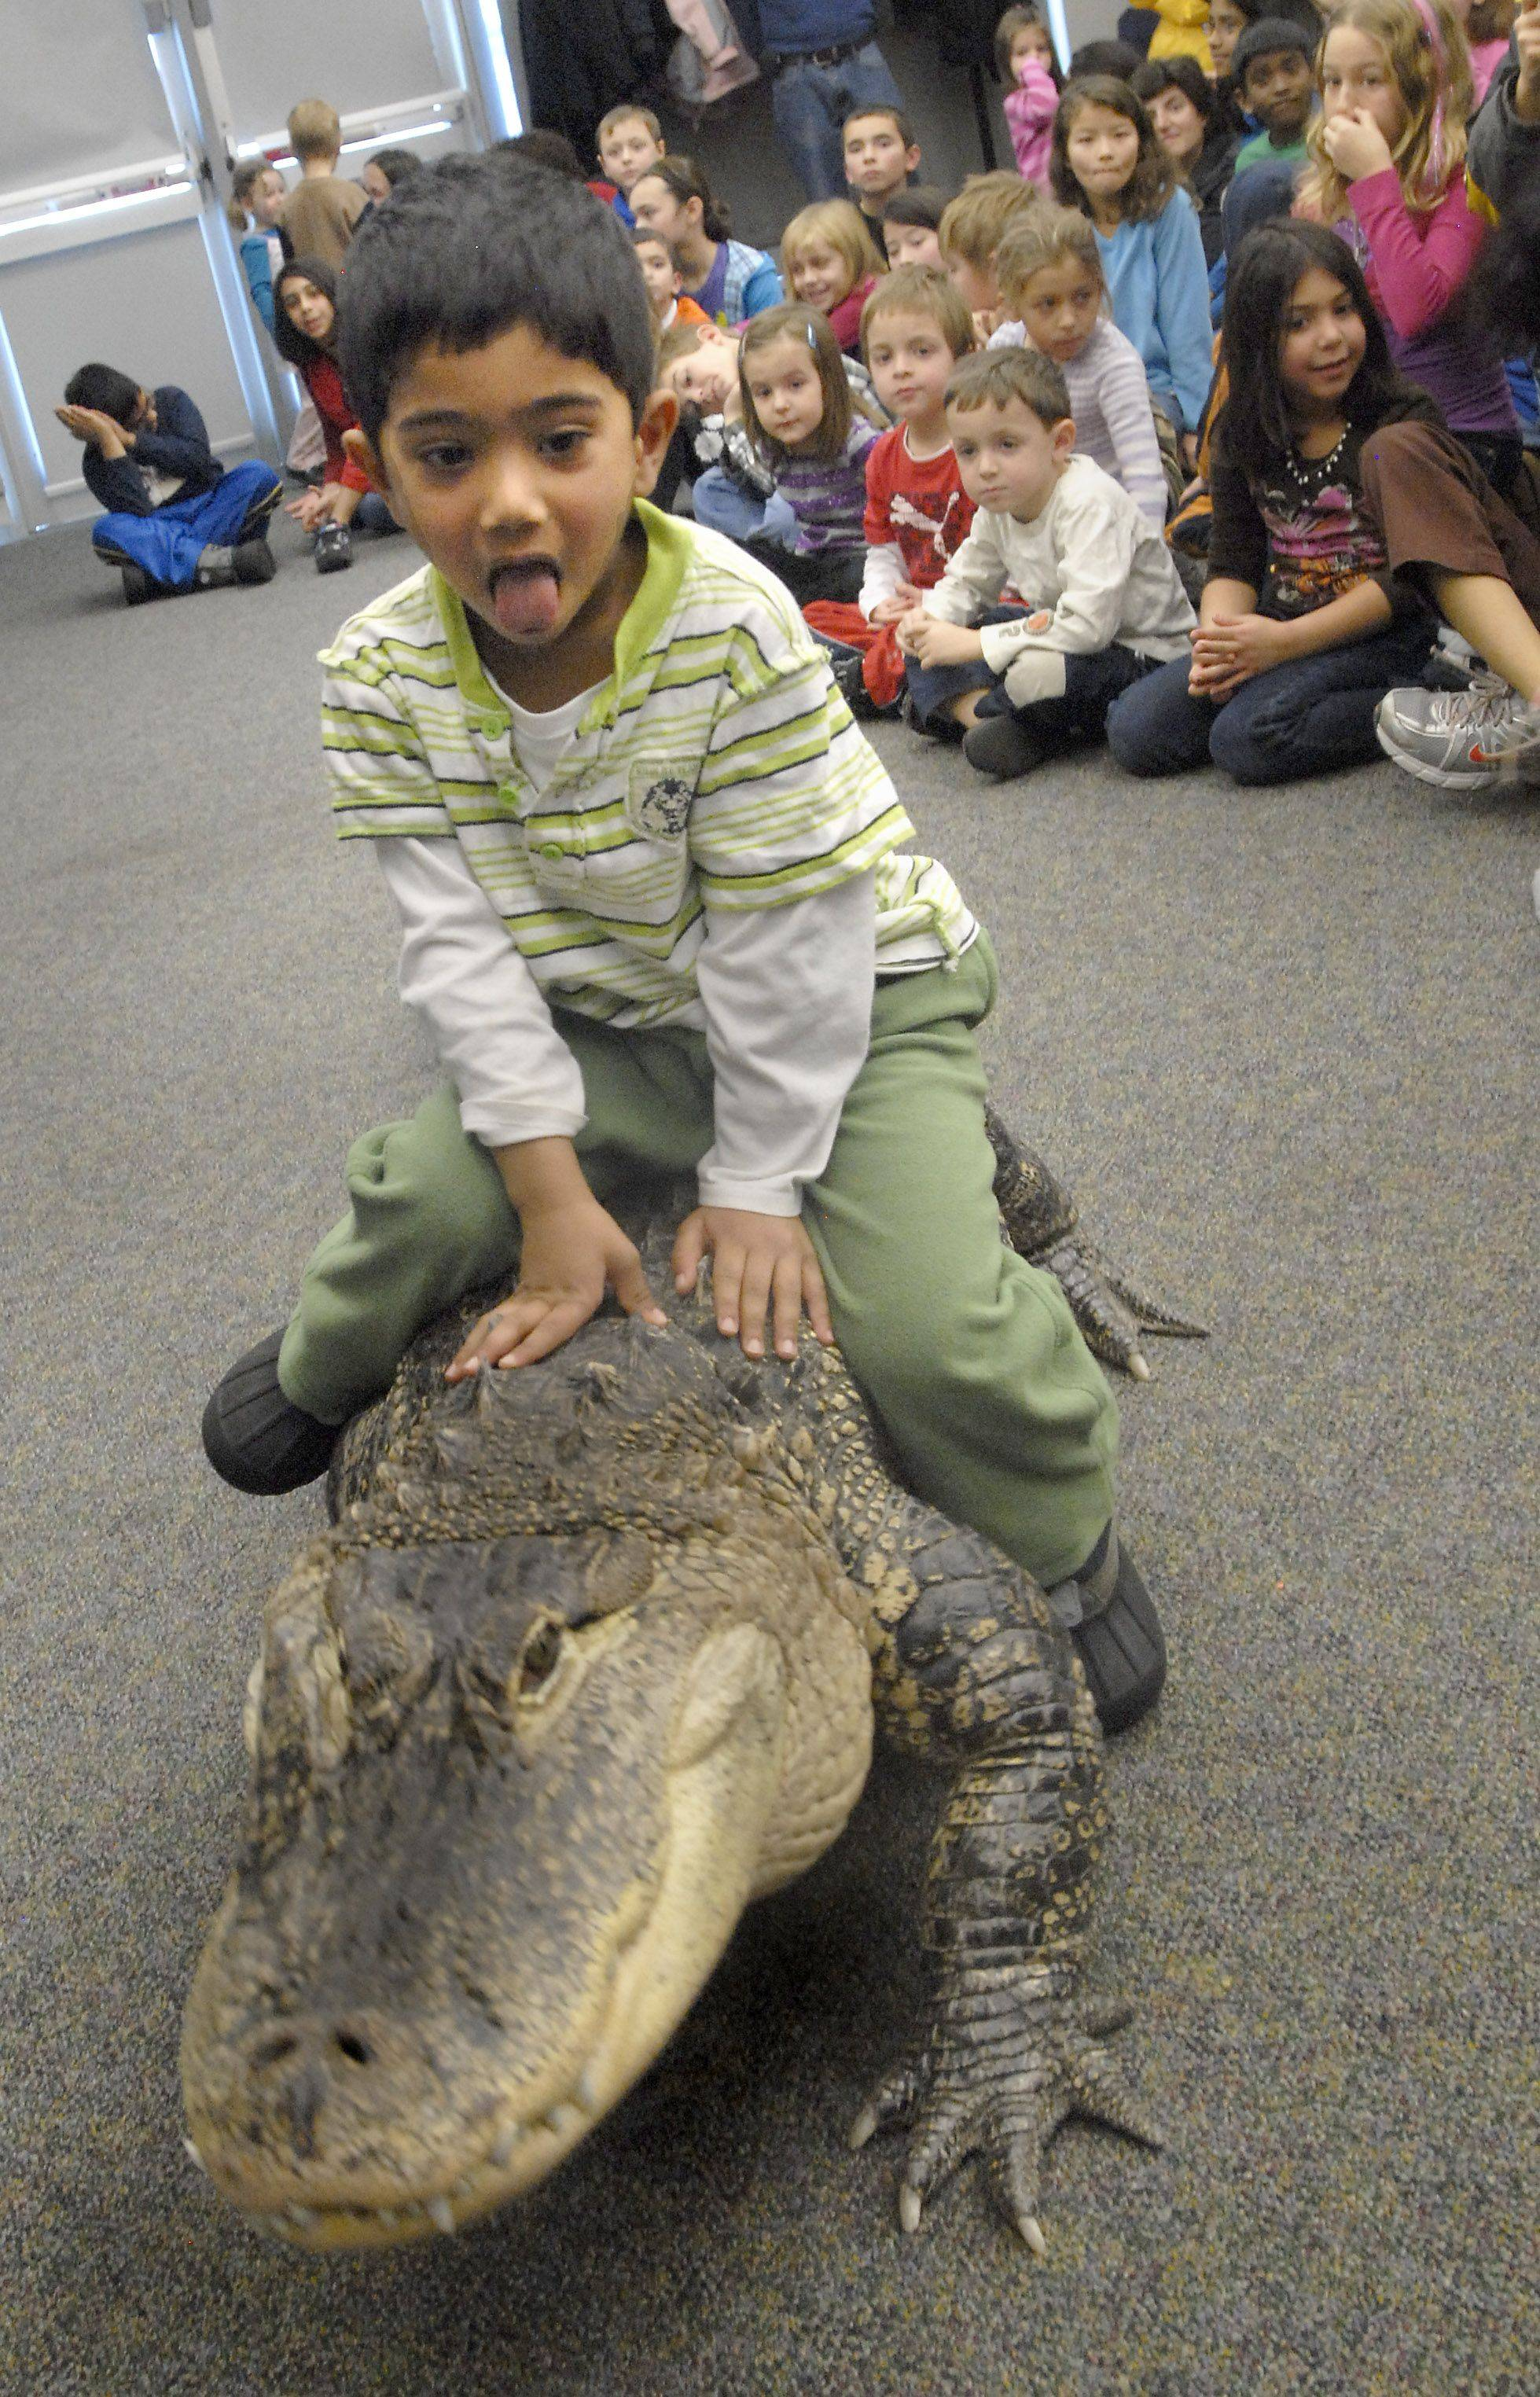 Caleb Samuel, 3, of Arlington Heights takes a ride on an 8-foot-long, 200-pound American alligator Wednesday at Indian Trails Public Library. Bubba has been trained by Jim Nesci of Cold Blooded Creatures.